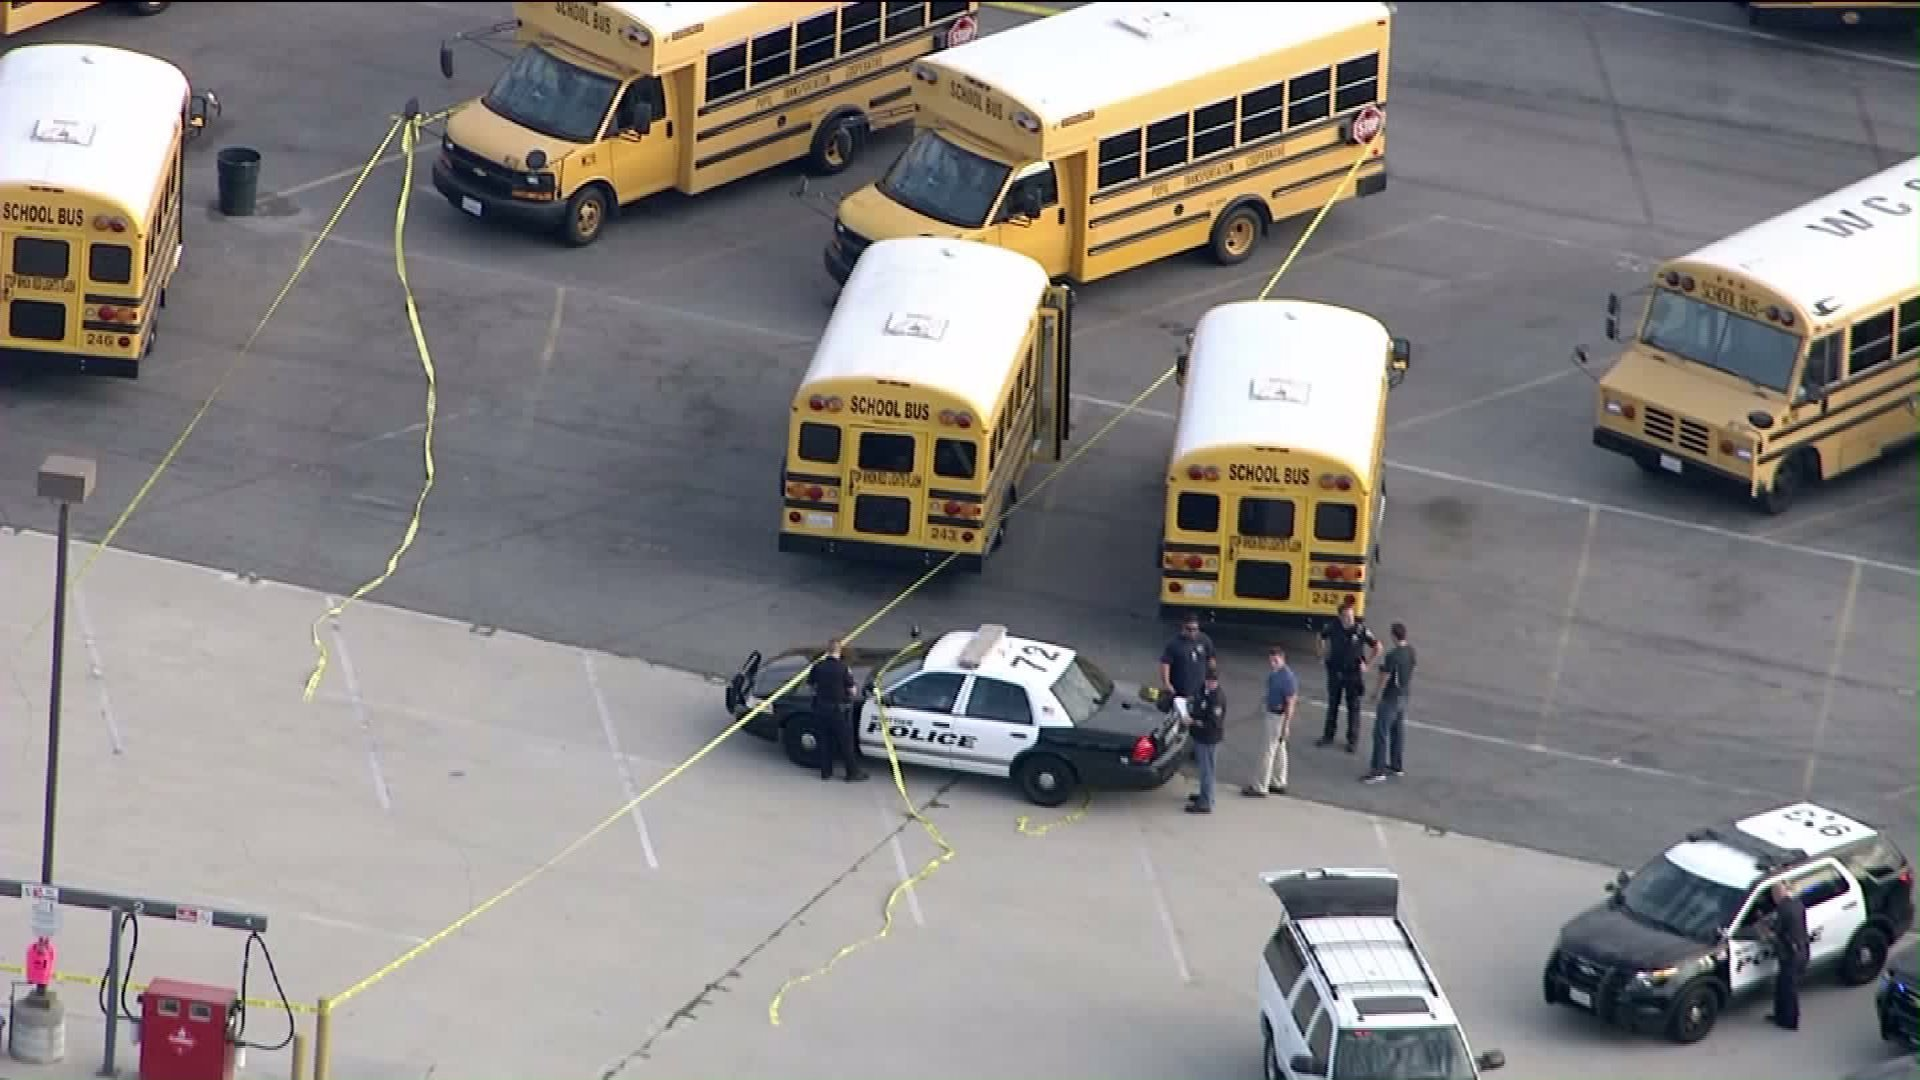 The body of a special needs student was found on a school bus in a district parking lot in Whittier on Sept. 11, 2015. (KTLA-TV Channel 5)